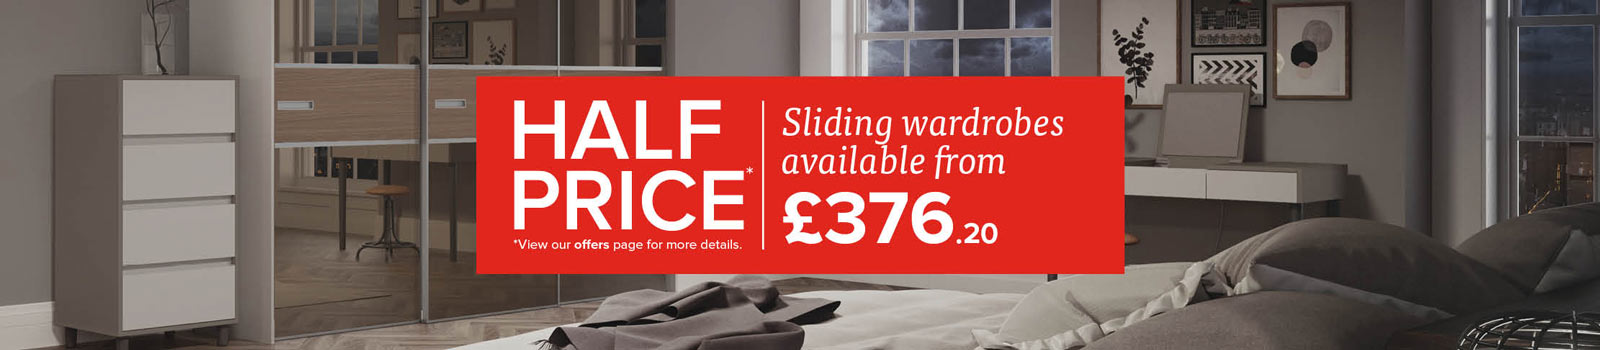 Half price sliding wardrobes